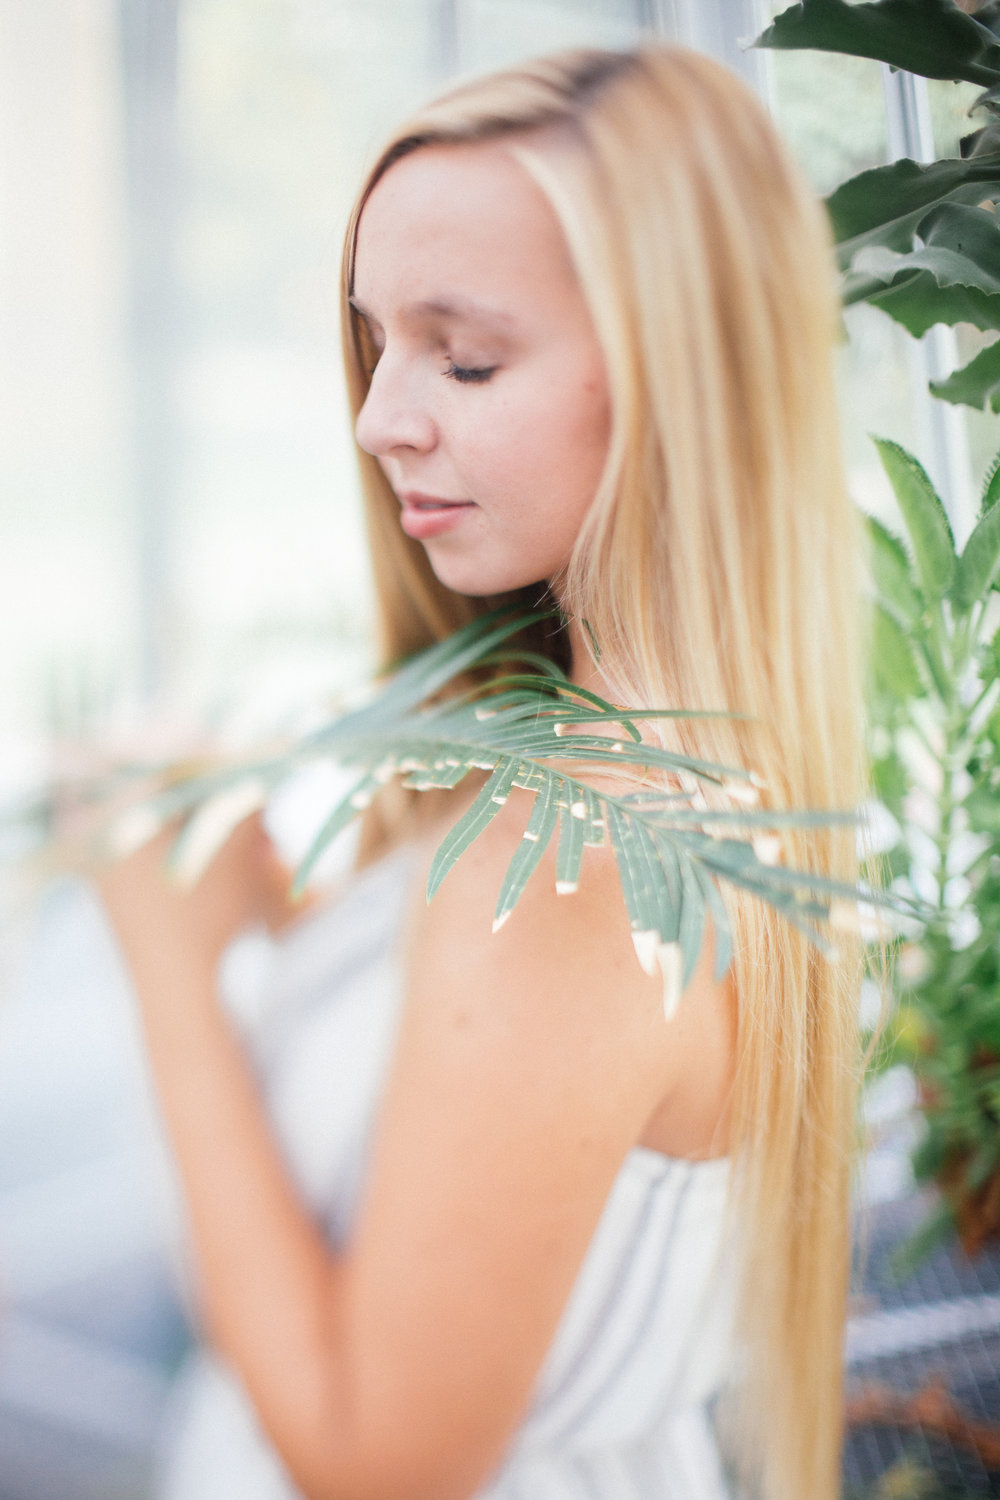 Fine Art Senior Photography in a greenhouse